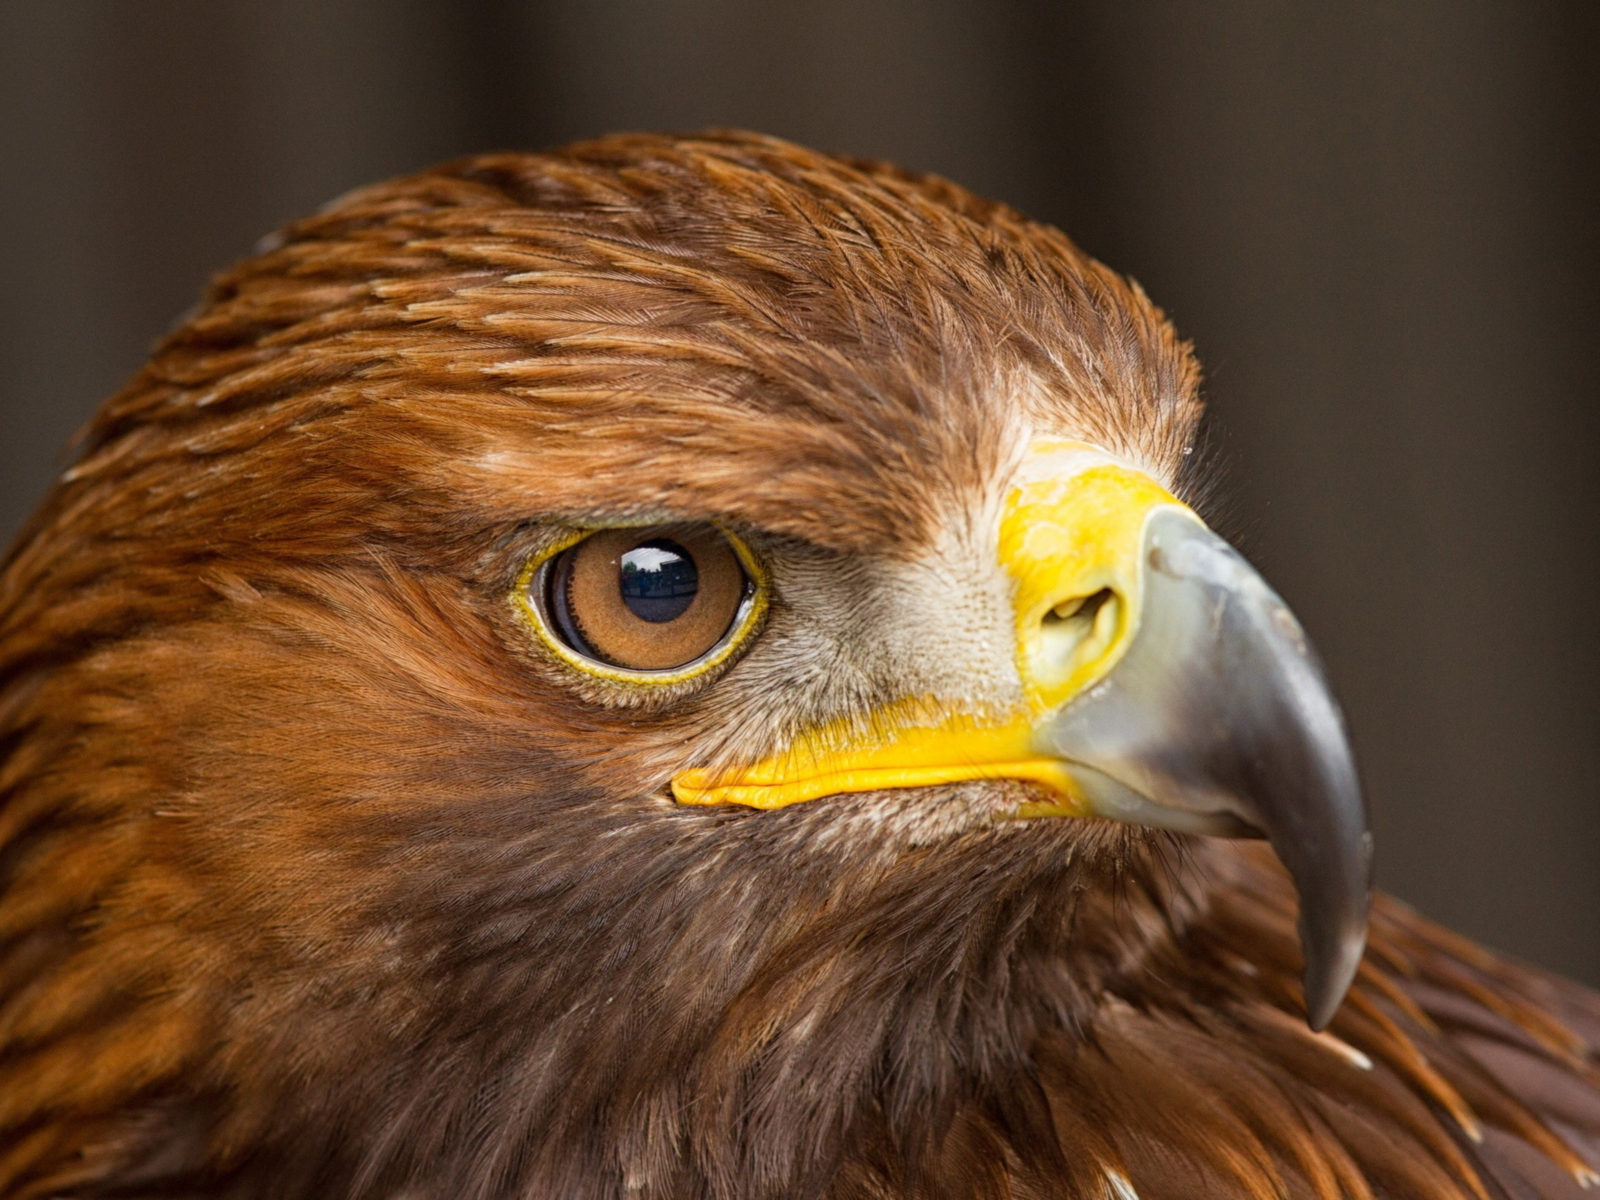 High Resolution Fall Wallpaper Eagle Bird Predator Head Beak Eyes Close Up 3840x2400